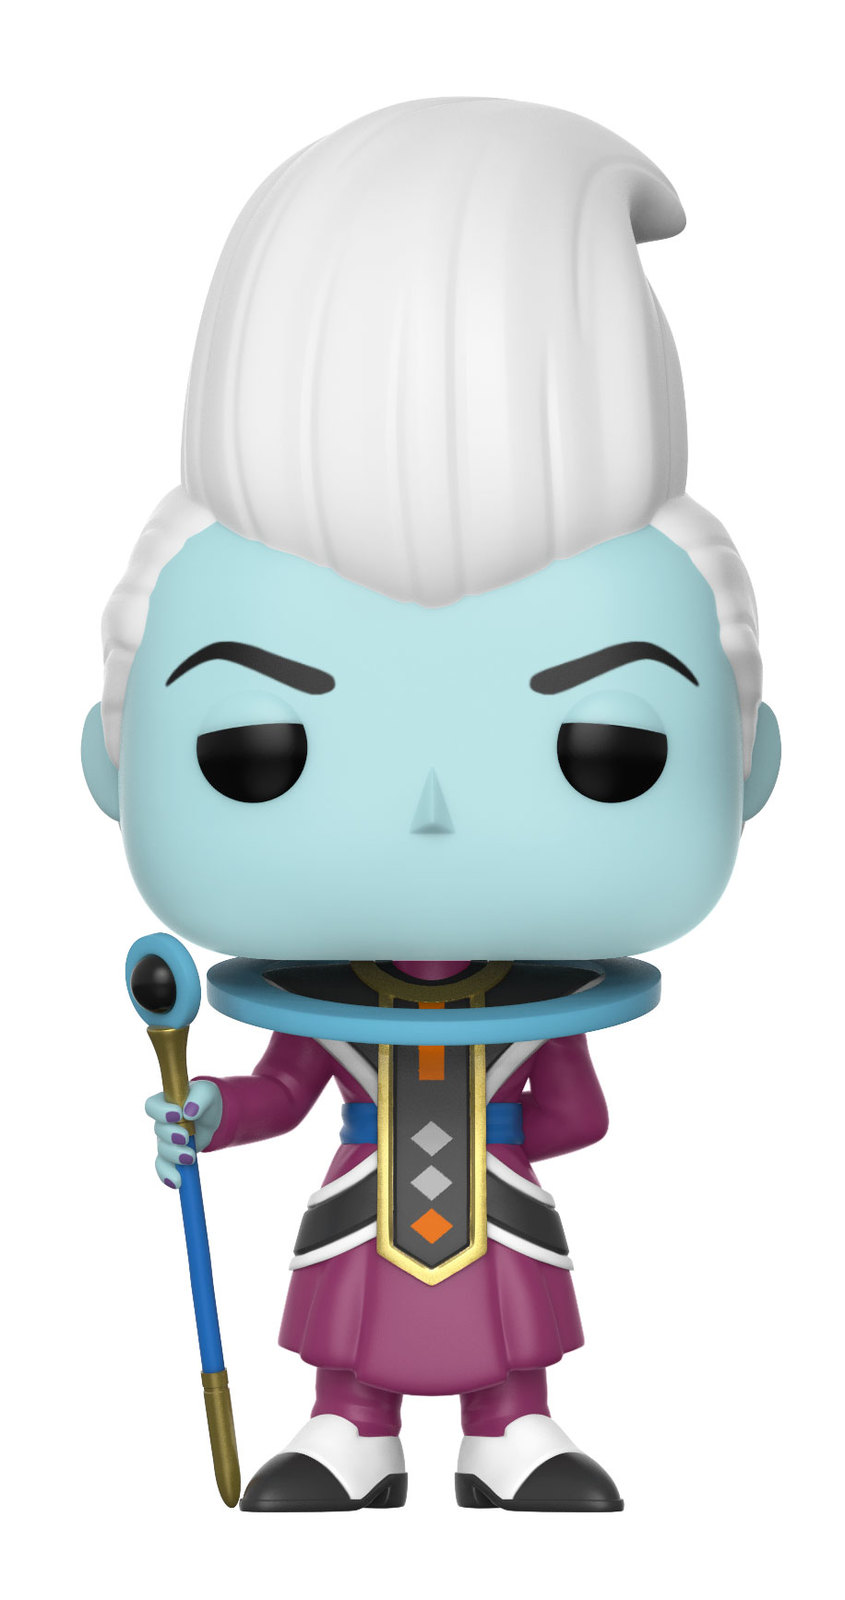 Dragon Ball Super – Whis Pop! Vinyl Figure image